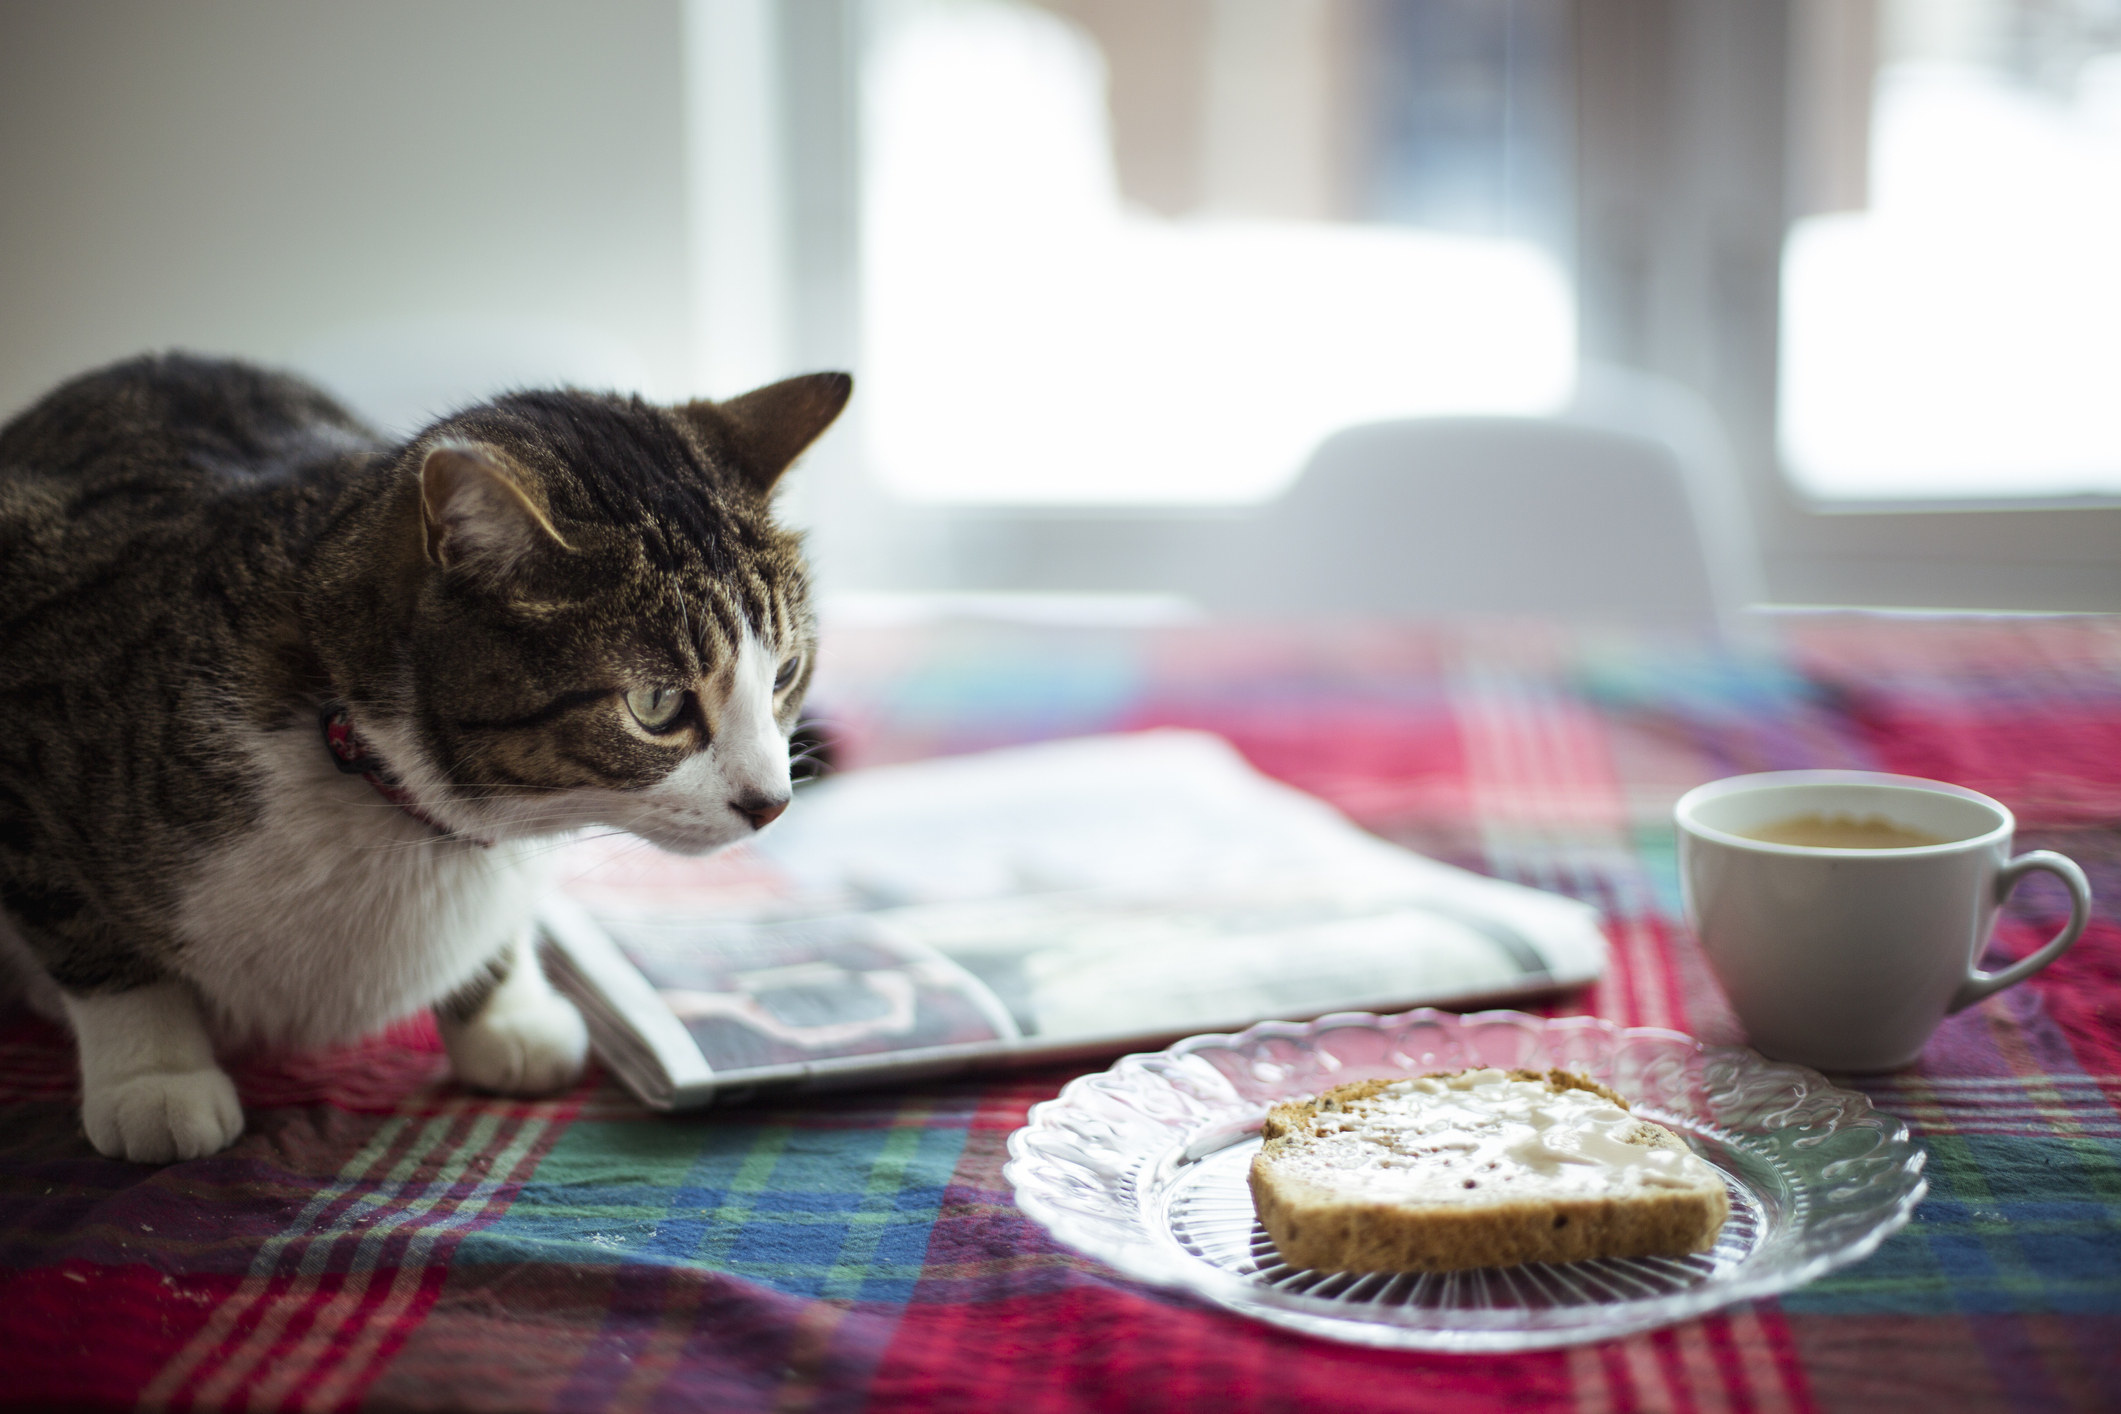 A cat looks at a piece of buttered toast